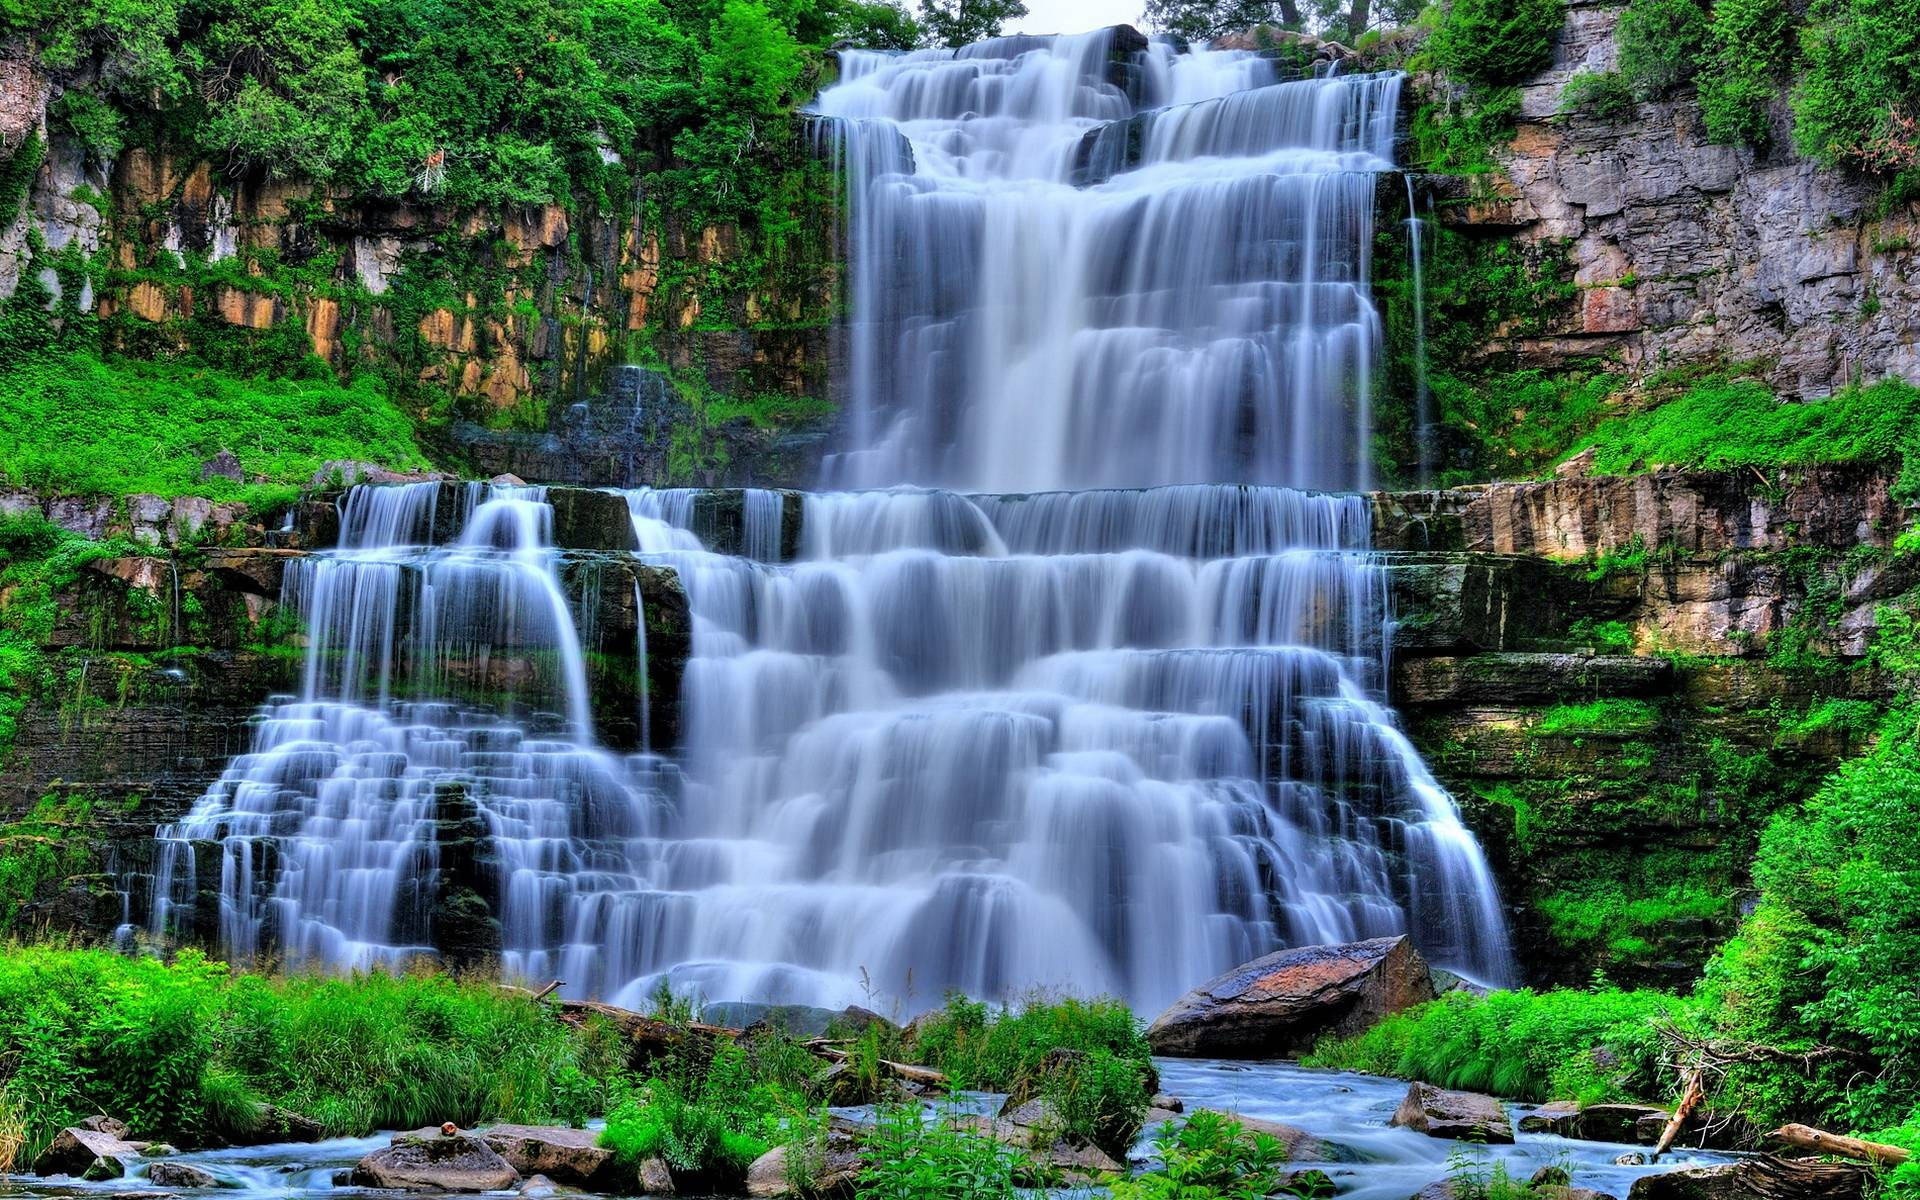 Waterfall Wallpaper 1 Download Free Beautiful Backgrounds For